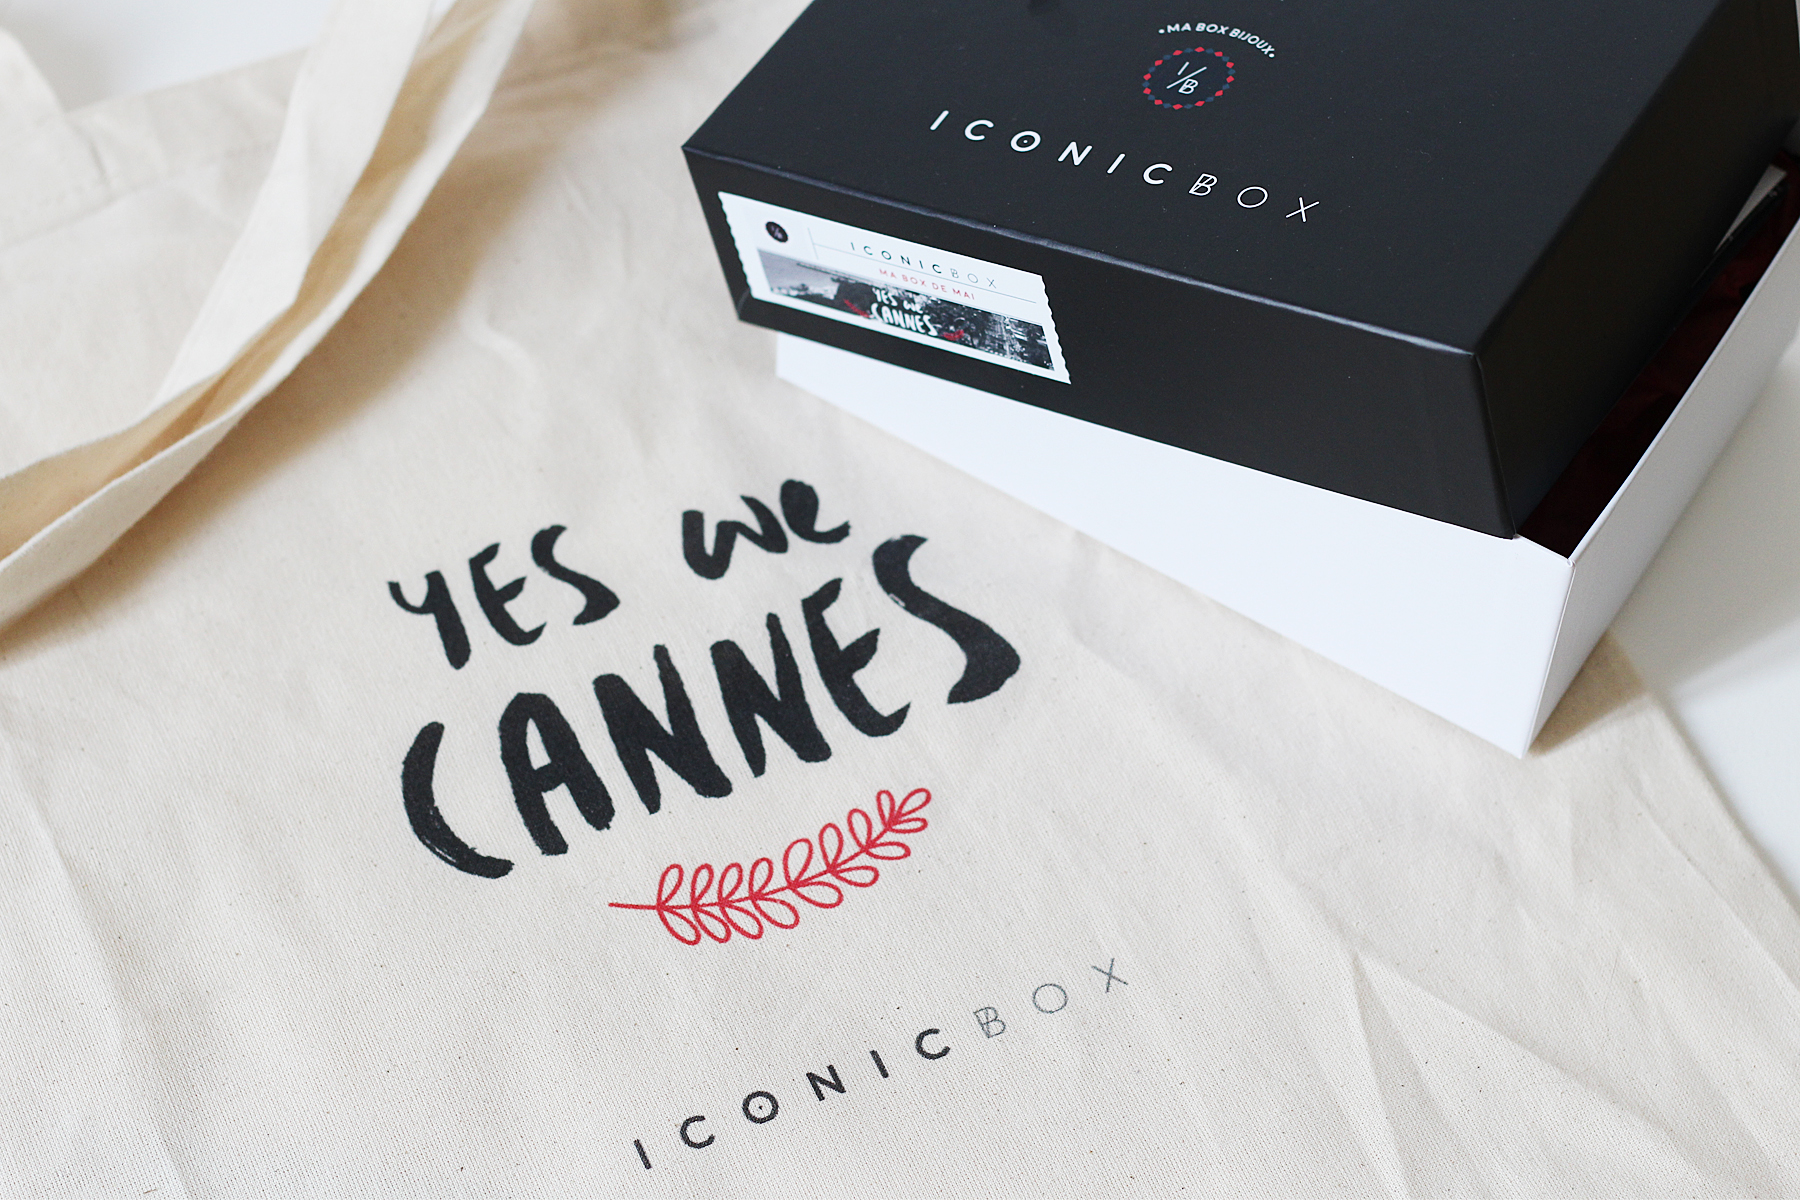 iconic-box-maty-yes-we-cannes